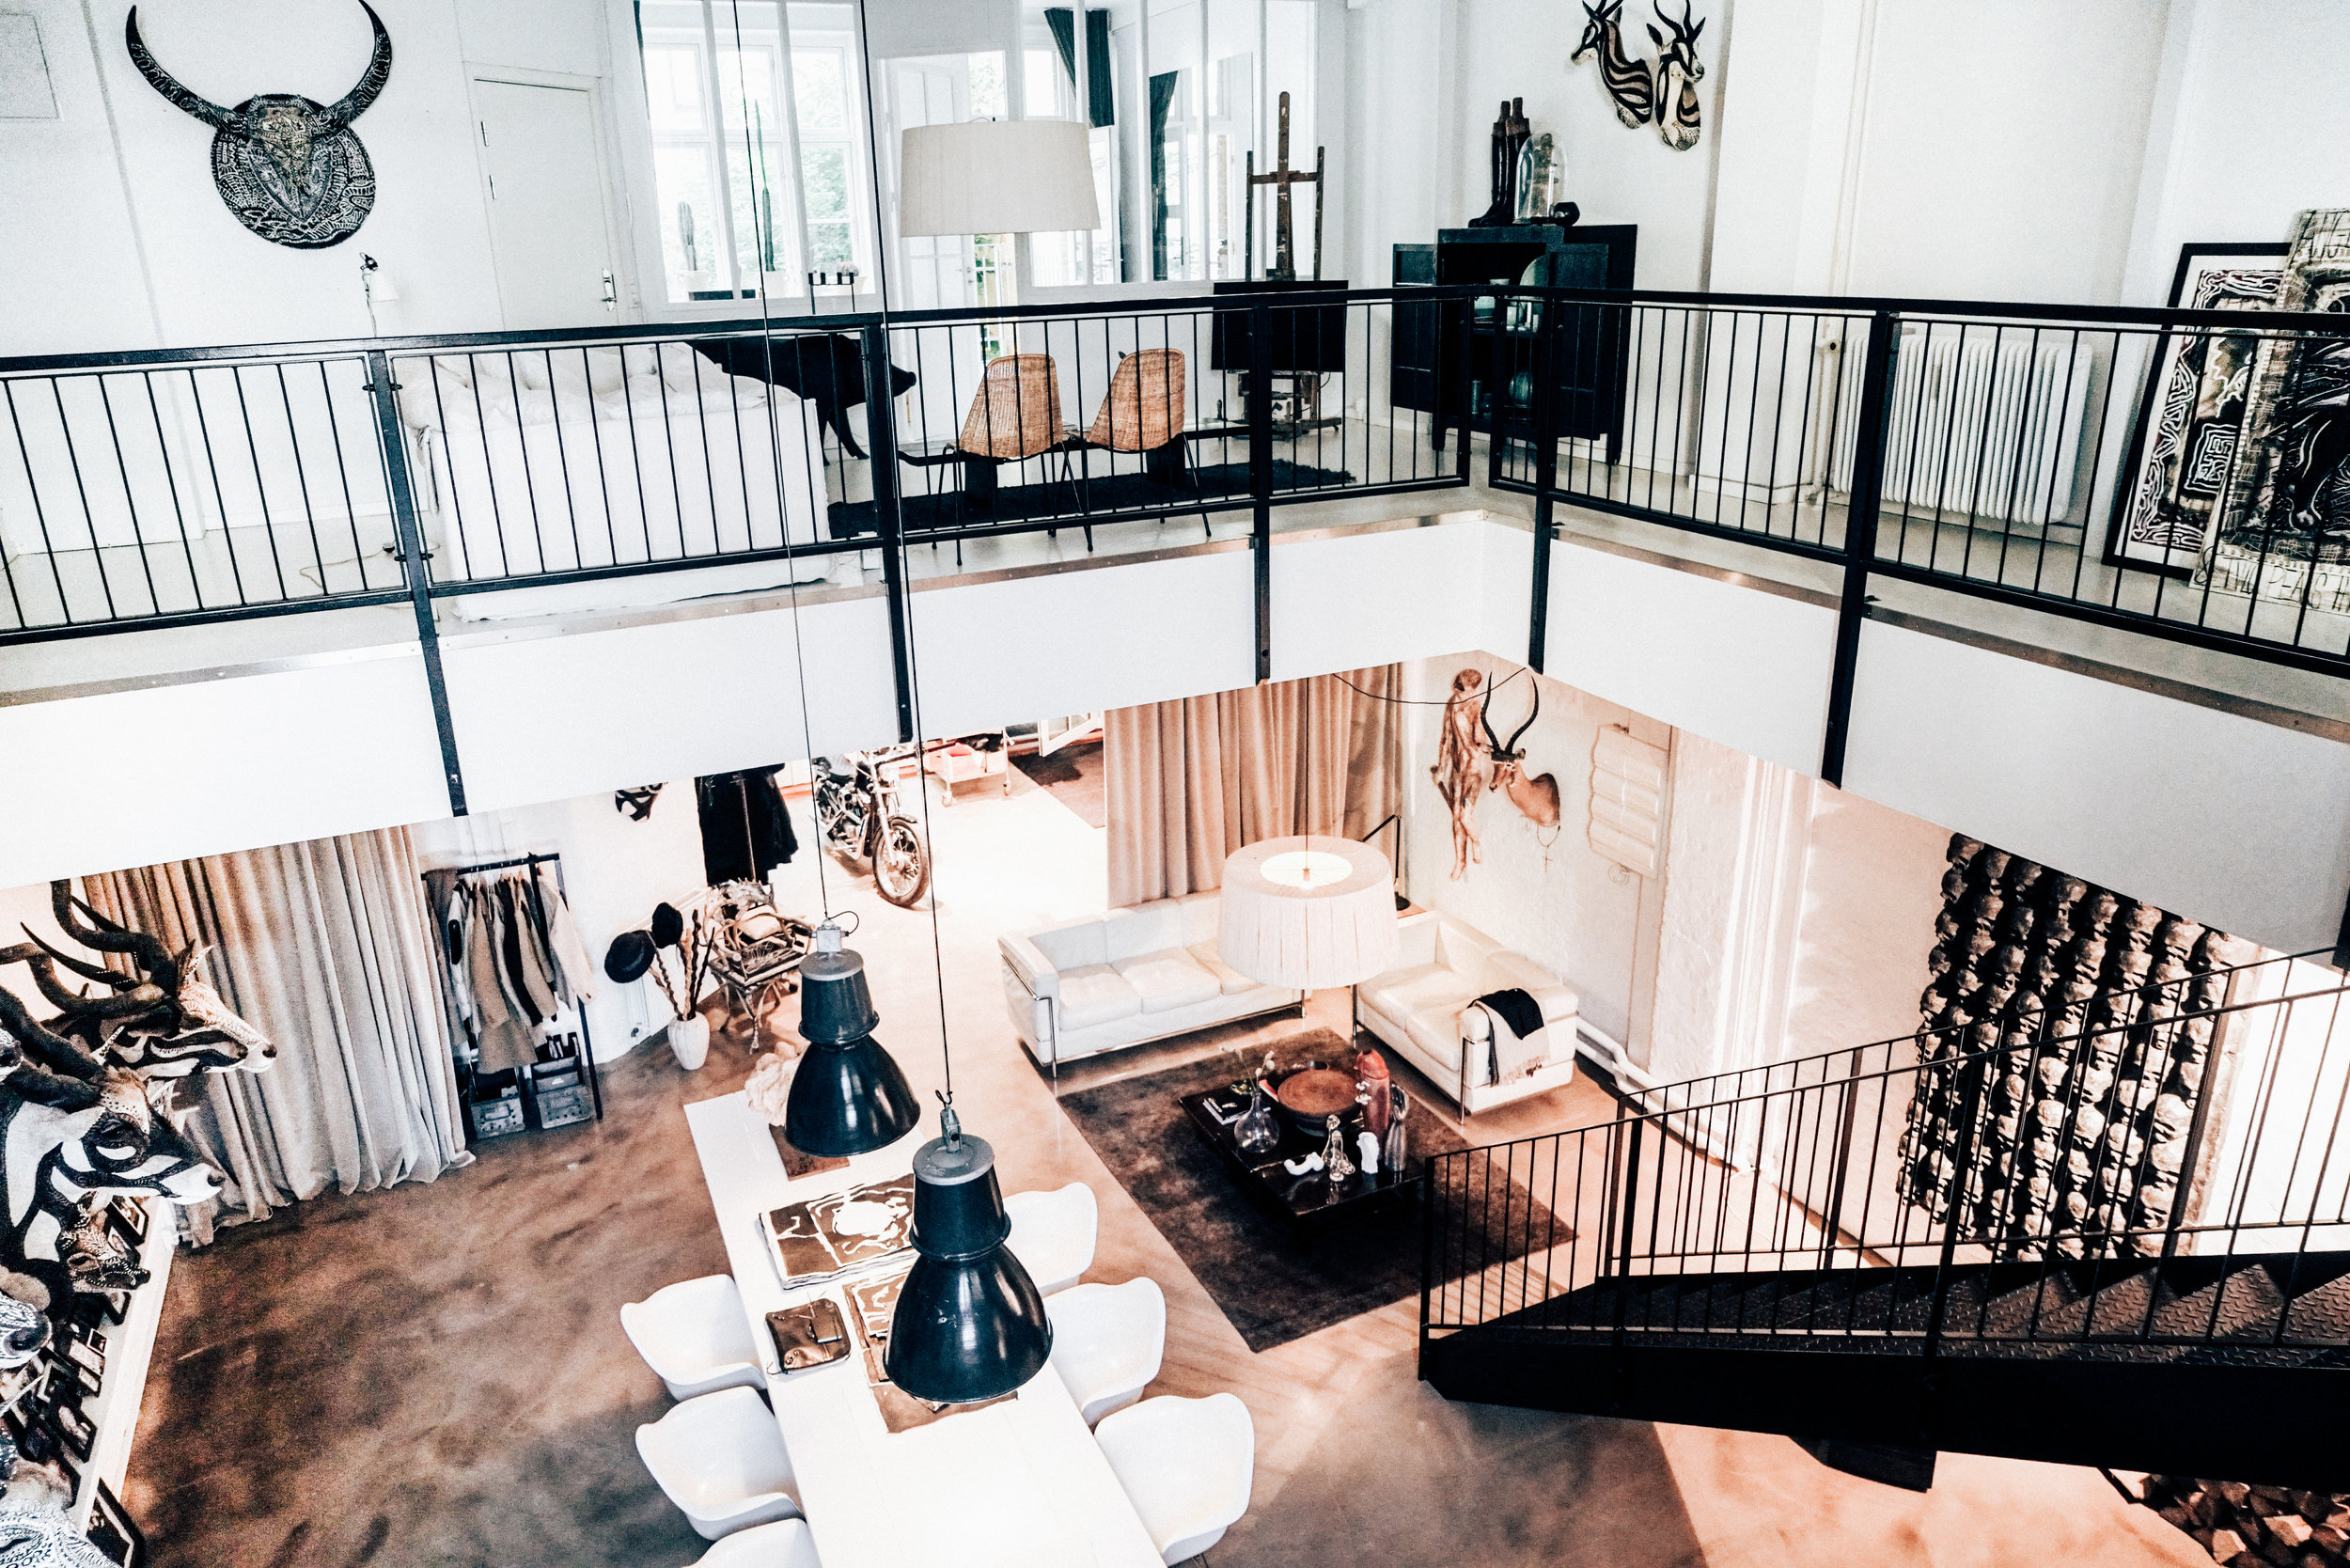 Morten Angelo's loft